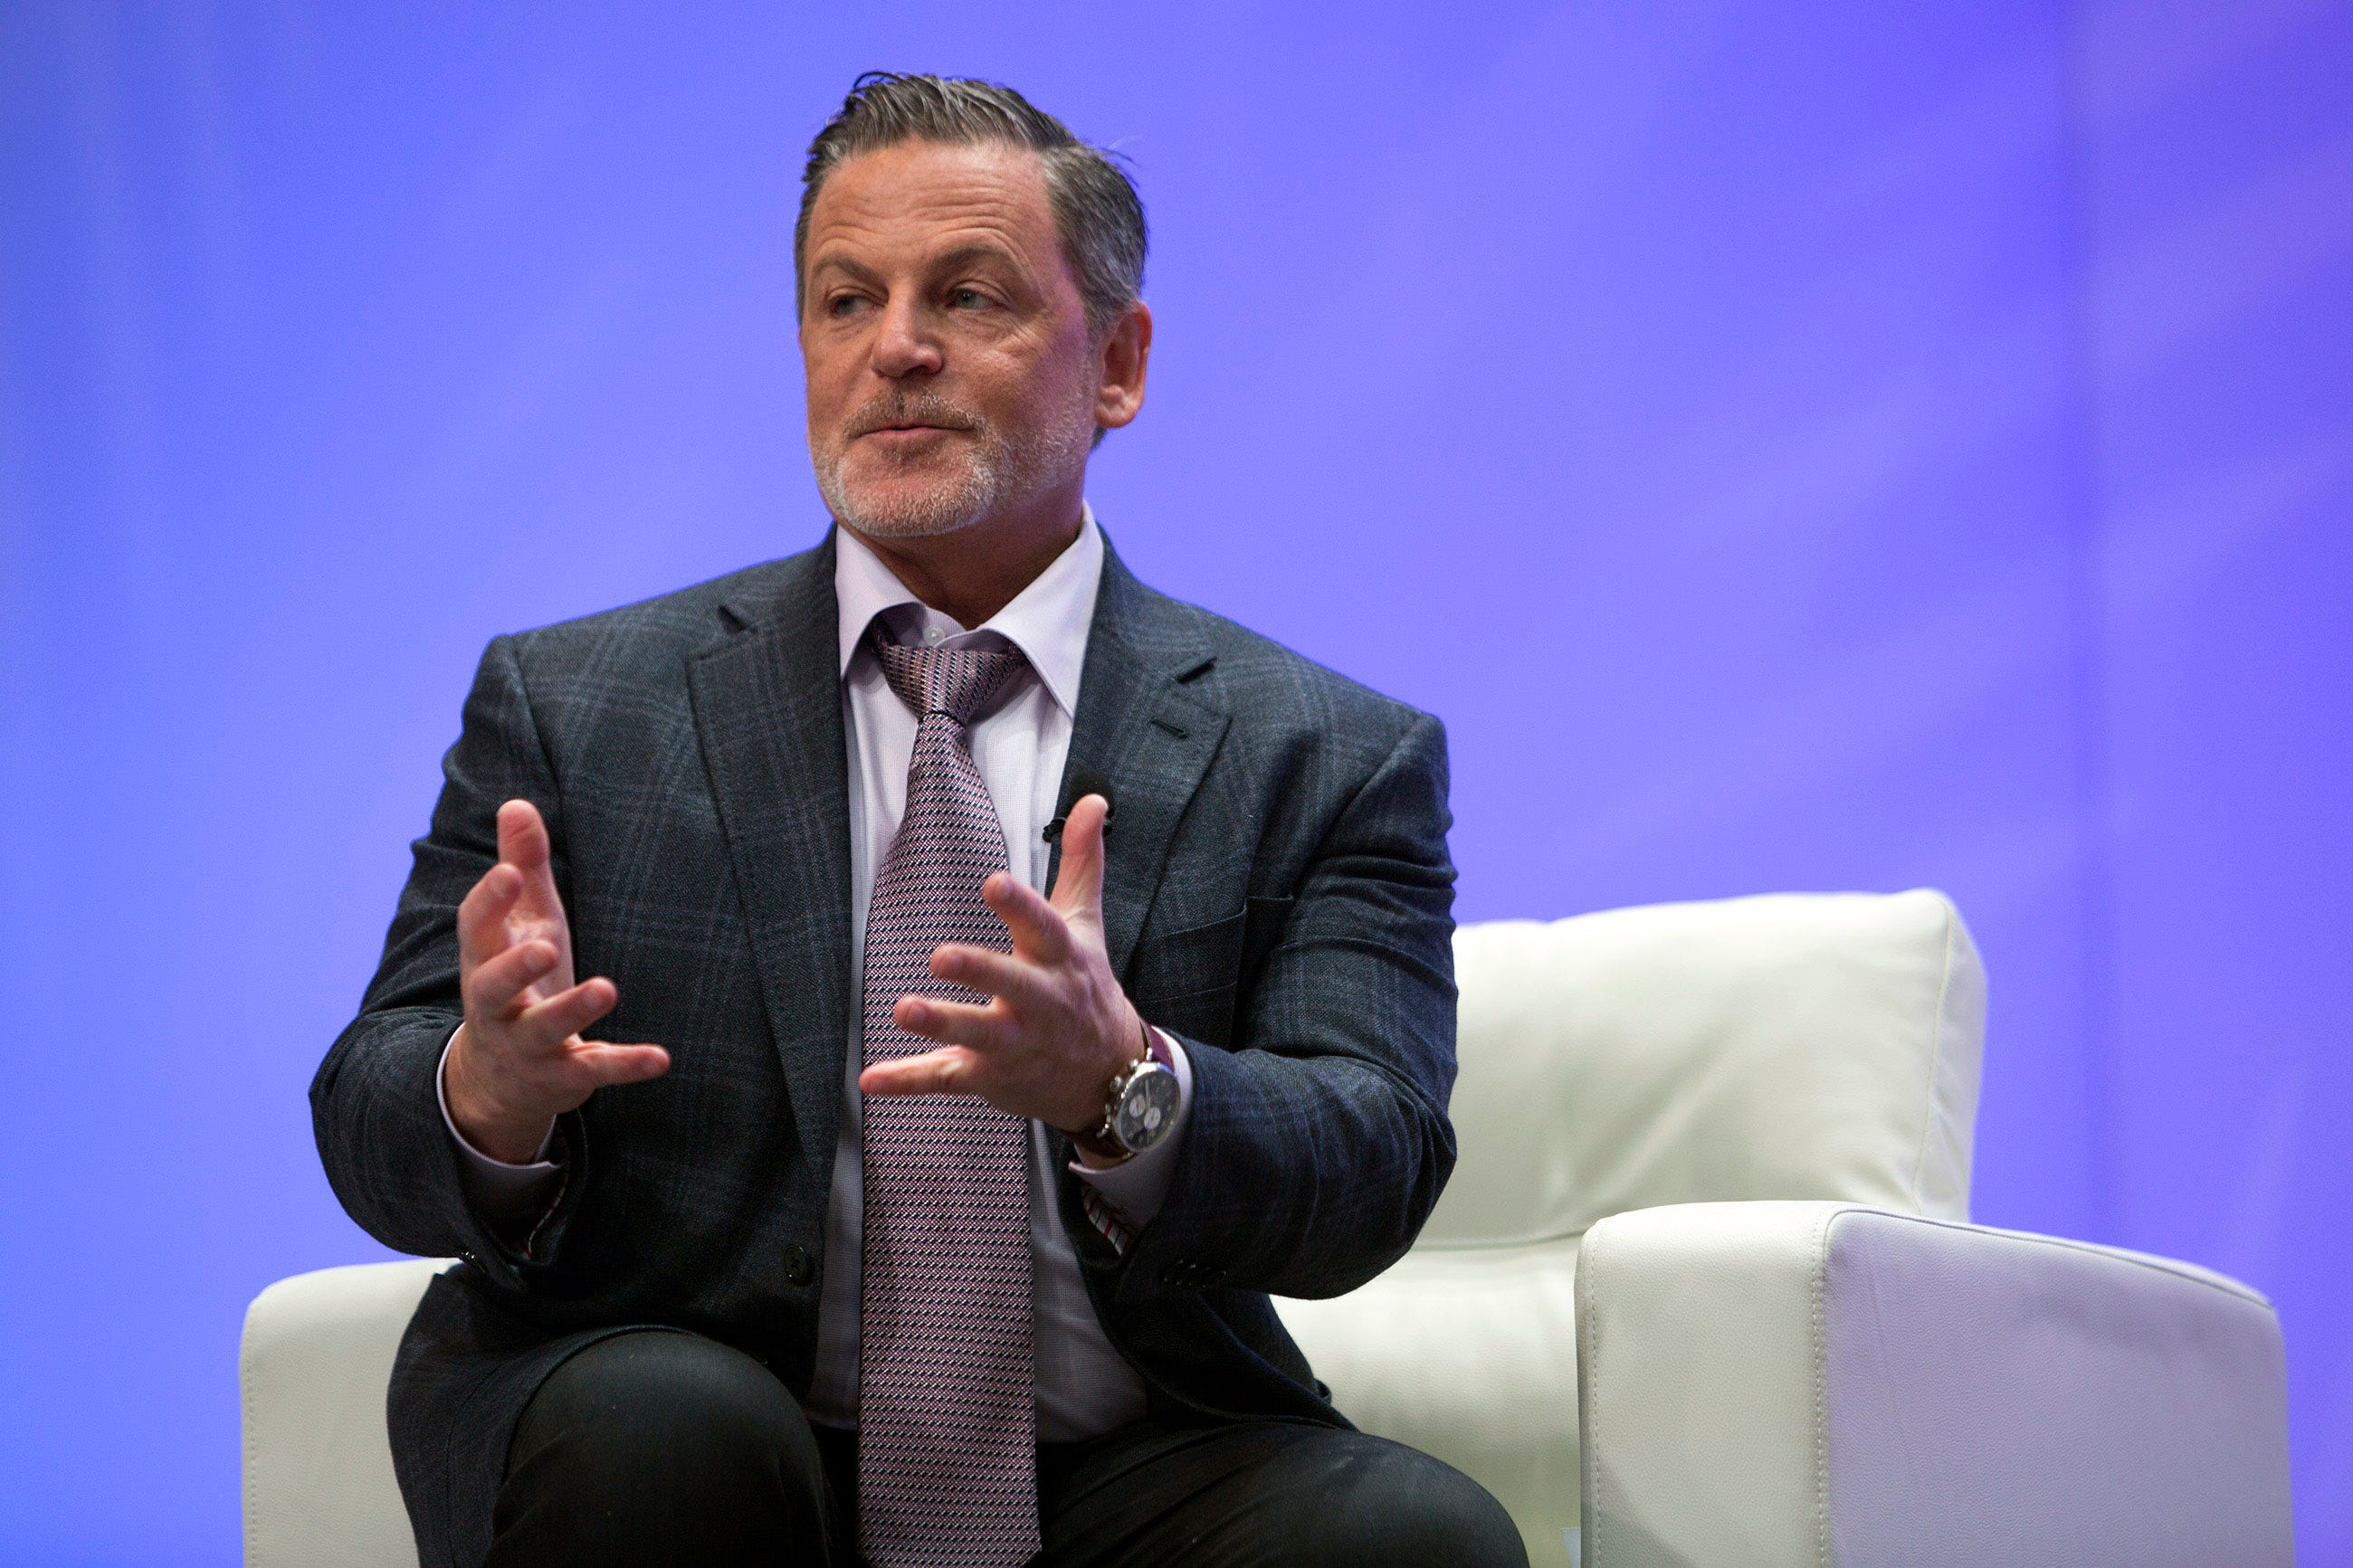 Cavs' Dan Gilbert on controversial Detroit sign: 'We screwed up badly'